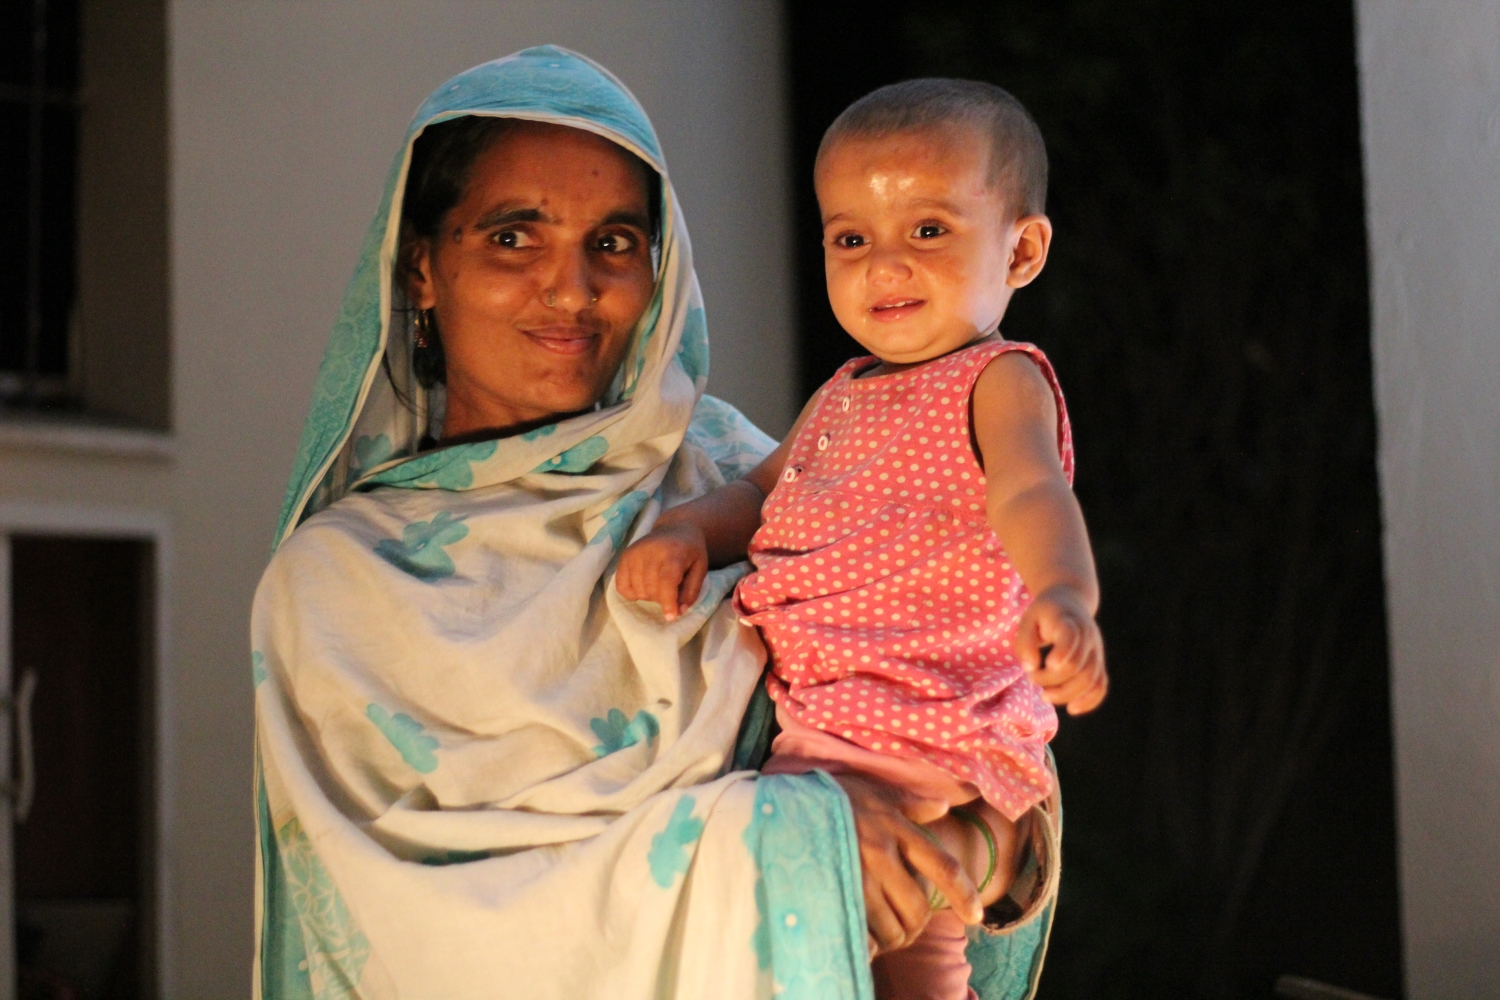 Pakistani mother and child.